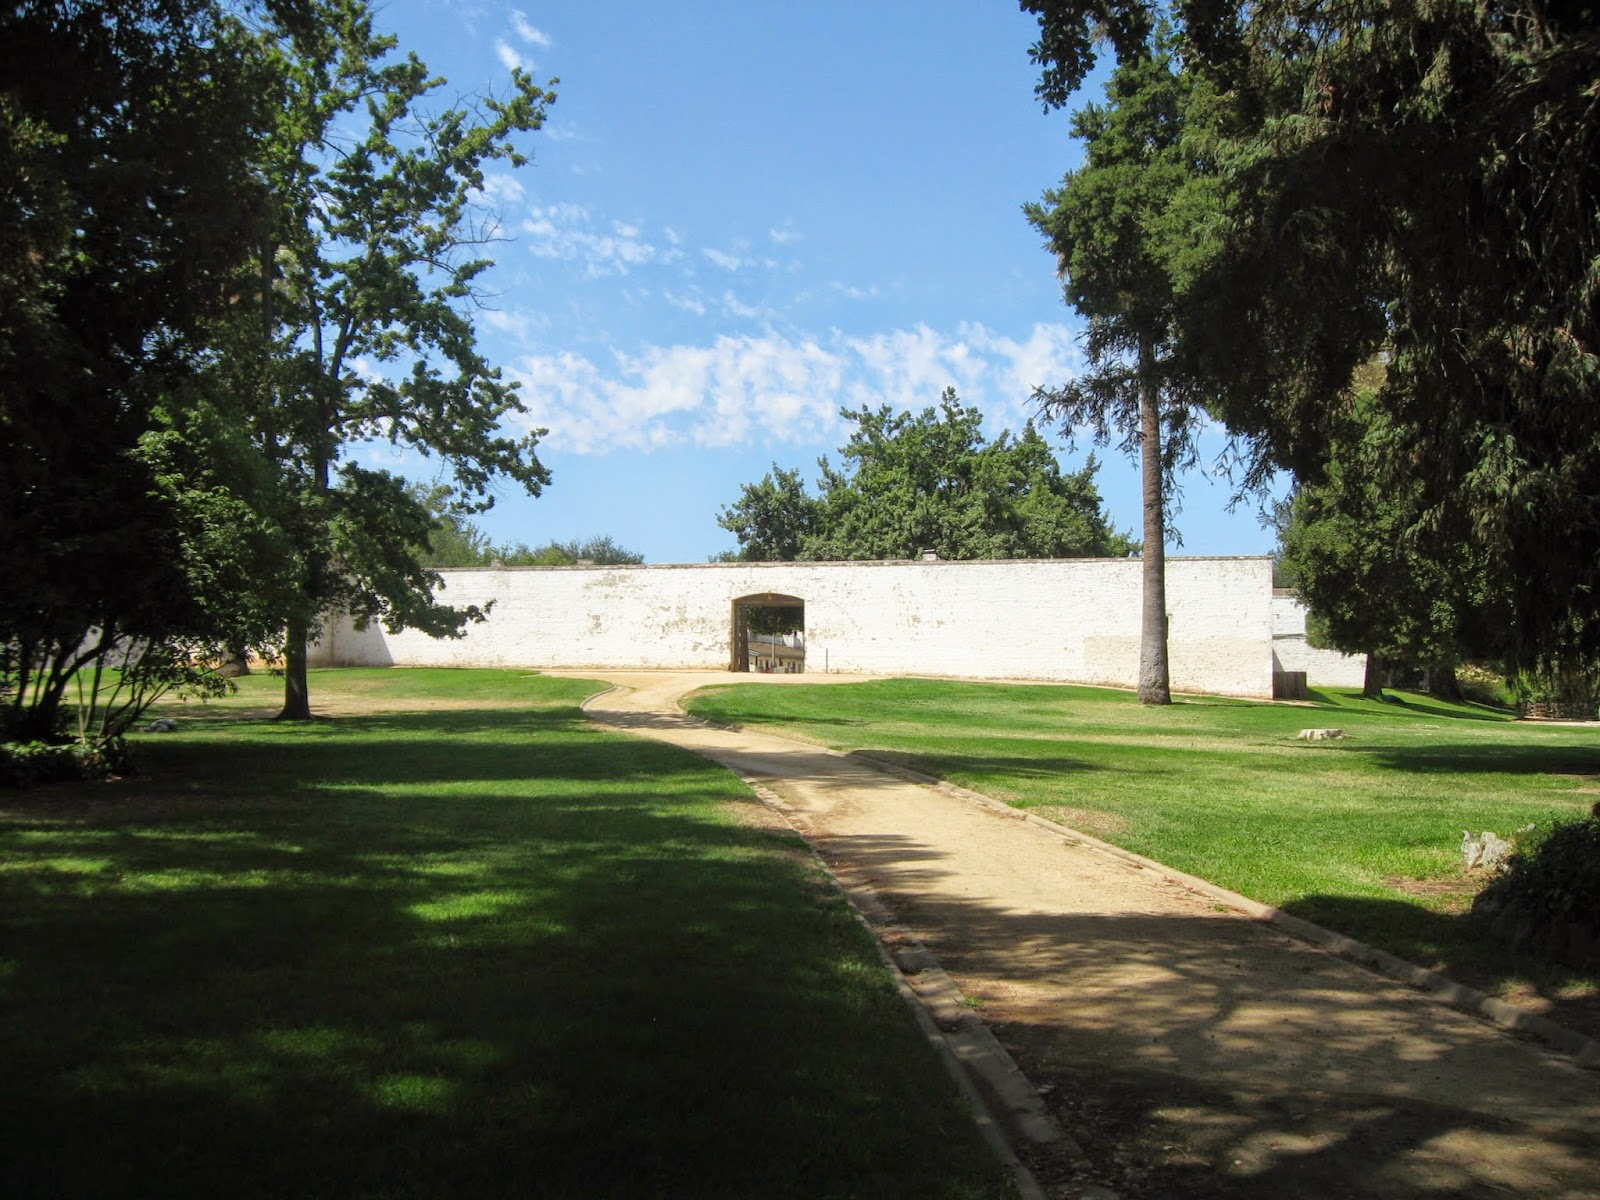 John Sutter in the Sacramento Valley–Sutter's Fort